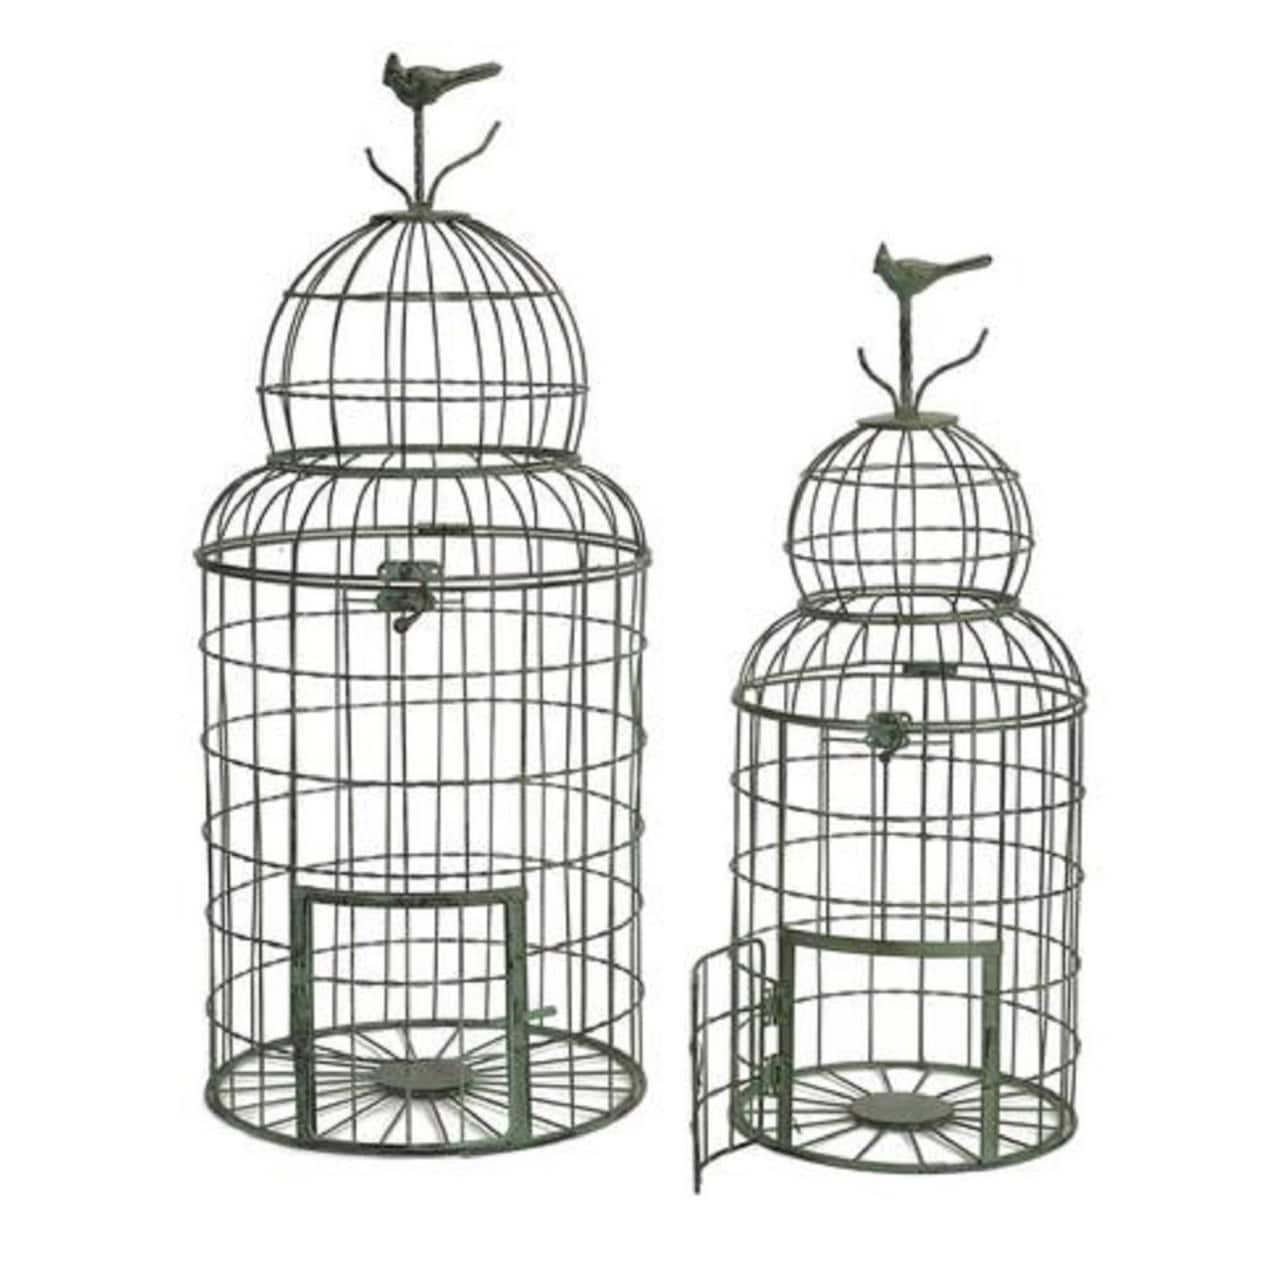 Set of 2 Springtime Domed Weathered Chicken Wire Bird Cage with Tiny ...